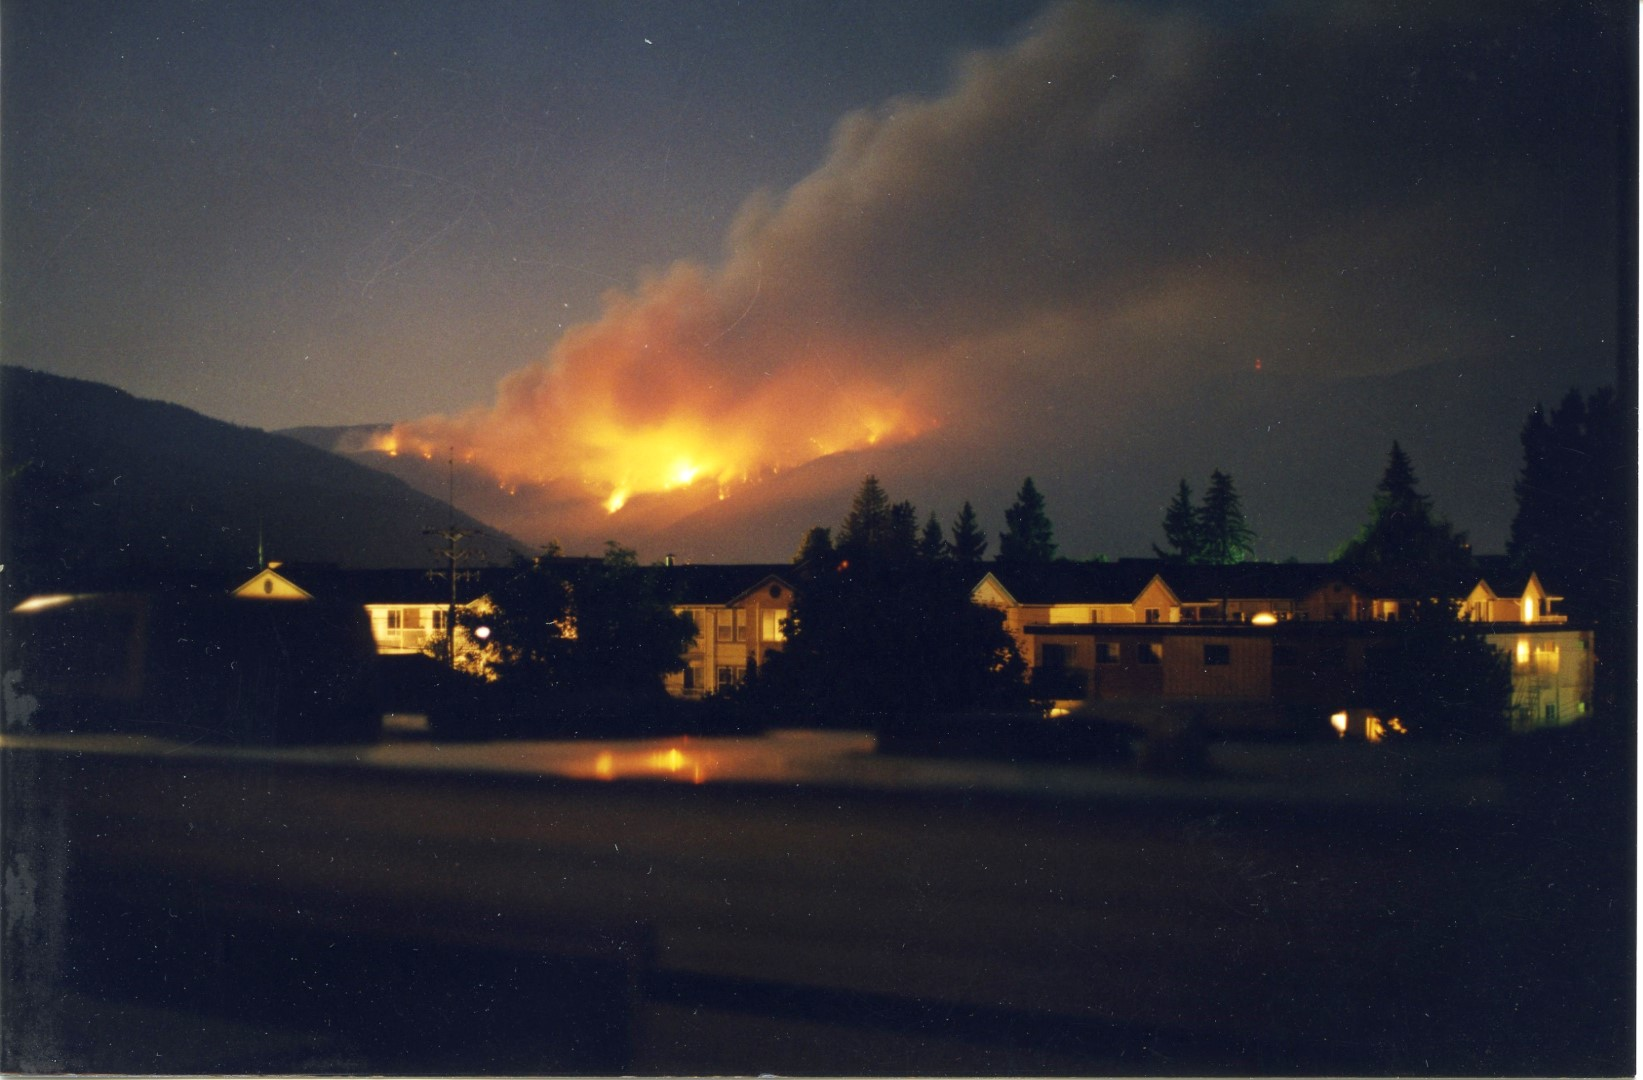 Fire burns bright red at night. Buildings lit in the foreground.